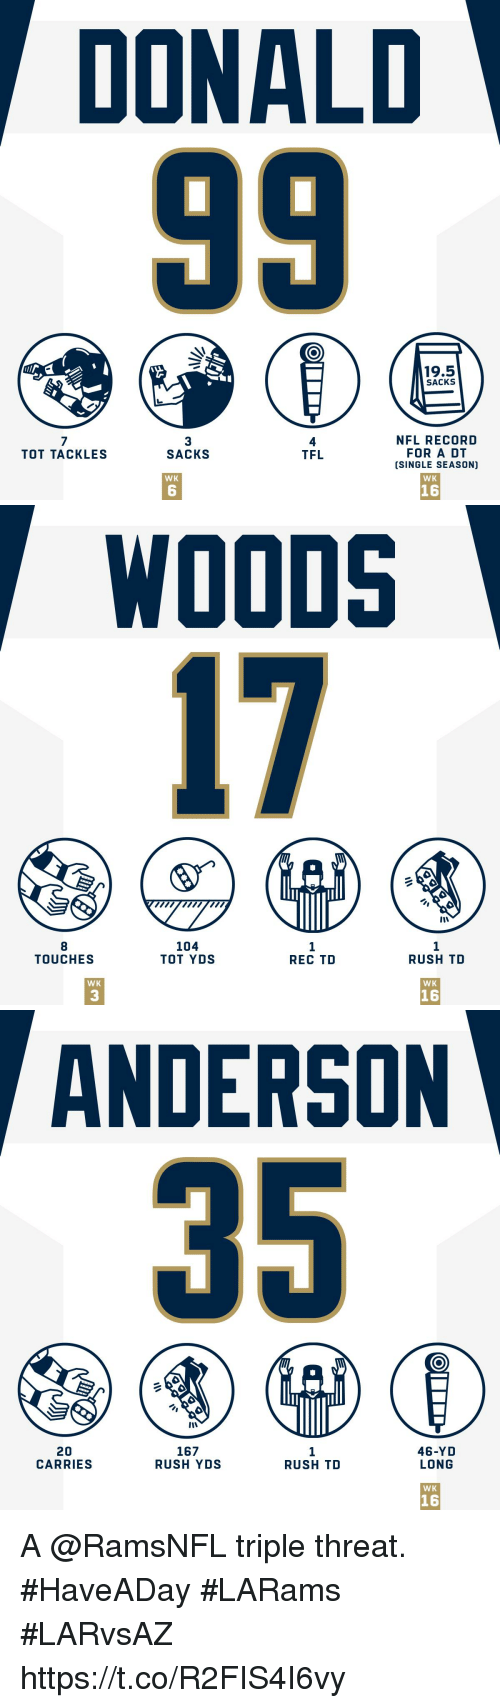 rec: DONALD  19.5  SACKS  3  SACKS  4  TFL  NFL RECORD  FOR A DT  (SINGLE SEASON)  TOT TACKLES  WK  WK  6  16   WOODS  17  8  TOUCHES  104  TOT YDS  1  REC TD  1  RUSH TD  WK  WK  3  16   ANDERSON  20  CARRIES  167  RUSH YDS  1  RUSH TD  46-YD  LONG  WK  16 A @RamsNFL triple threat. #HaveADay  #LARams #LARvsAZ https://t.co/R2FIS4I6vy